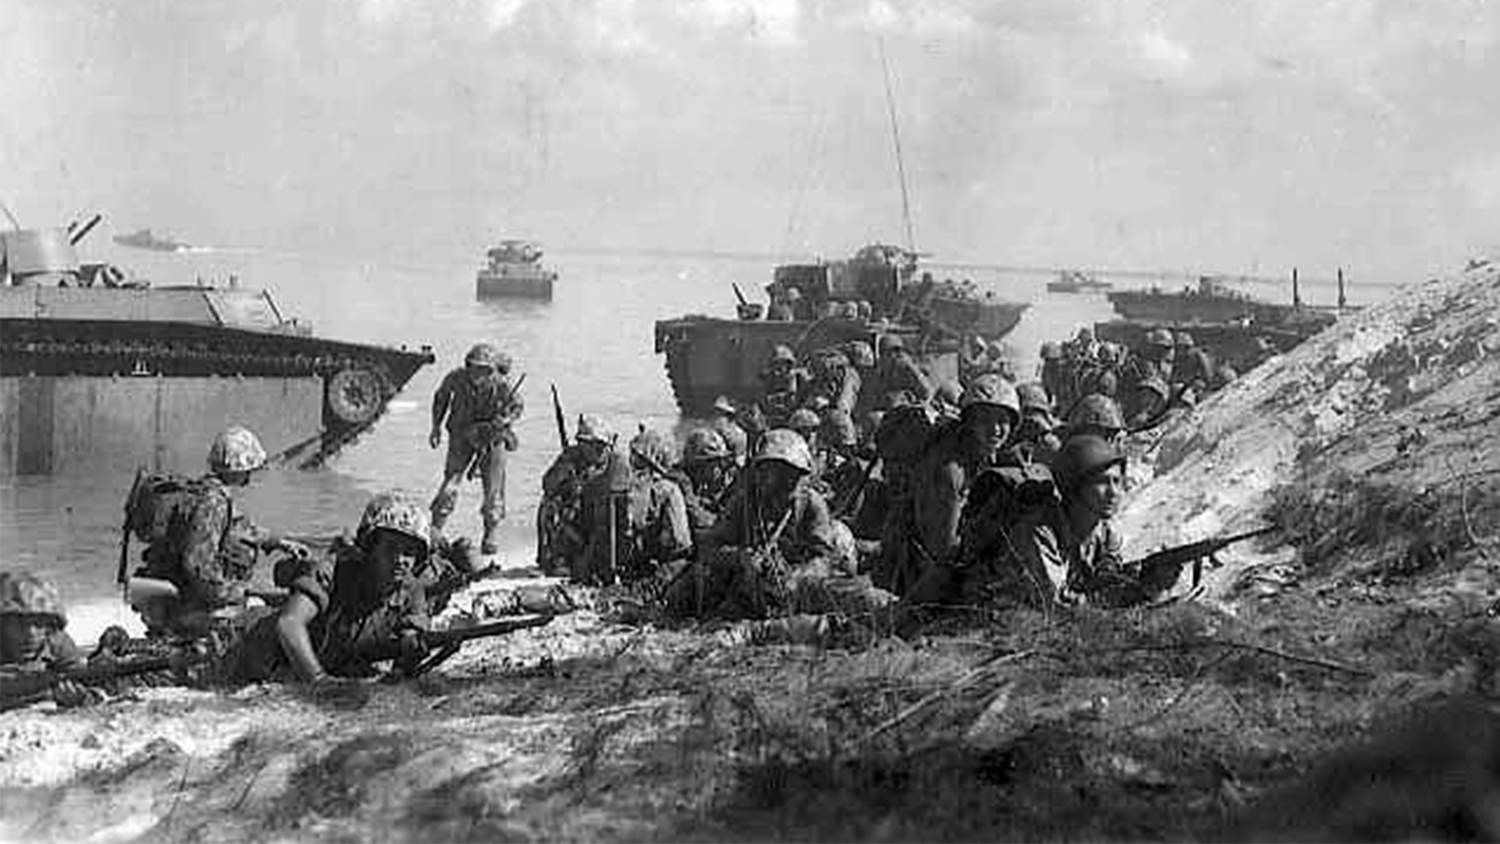 battleofsaipan-blog-071217